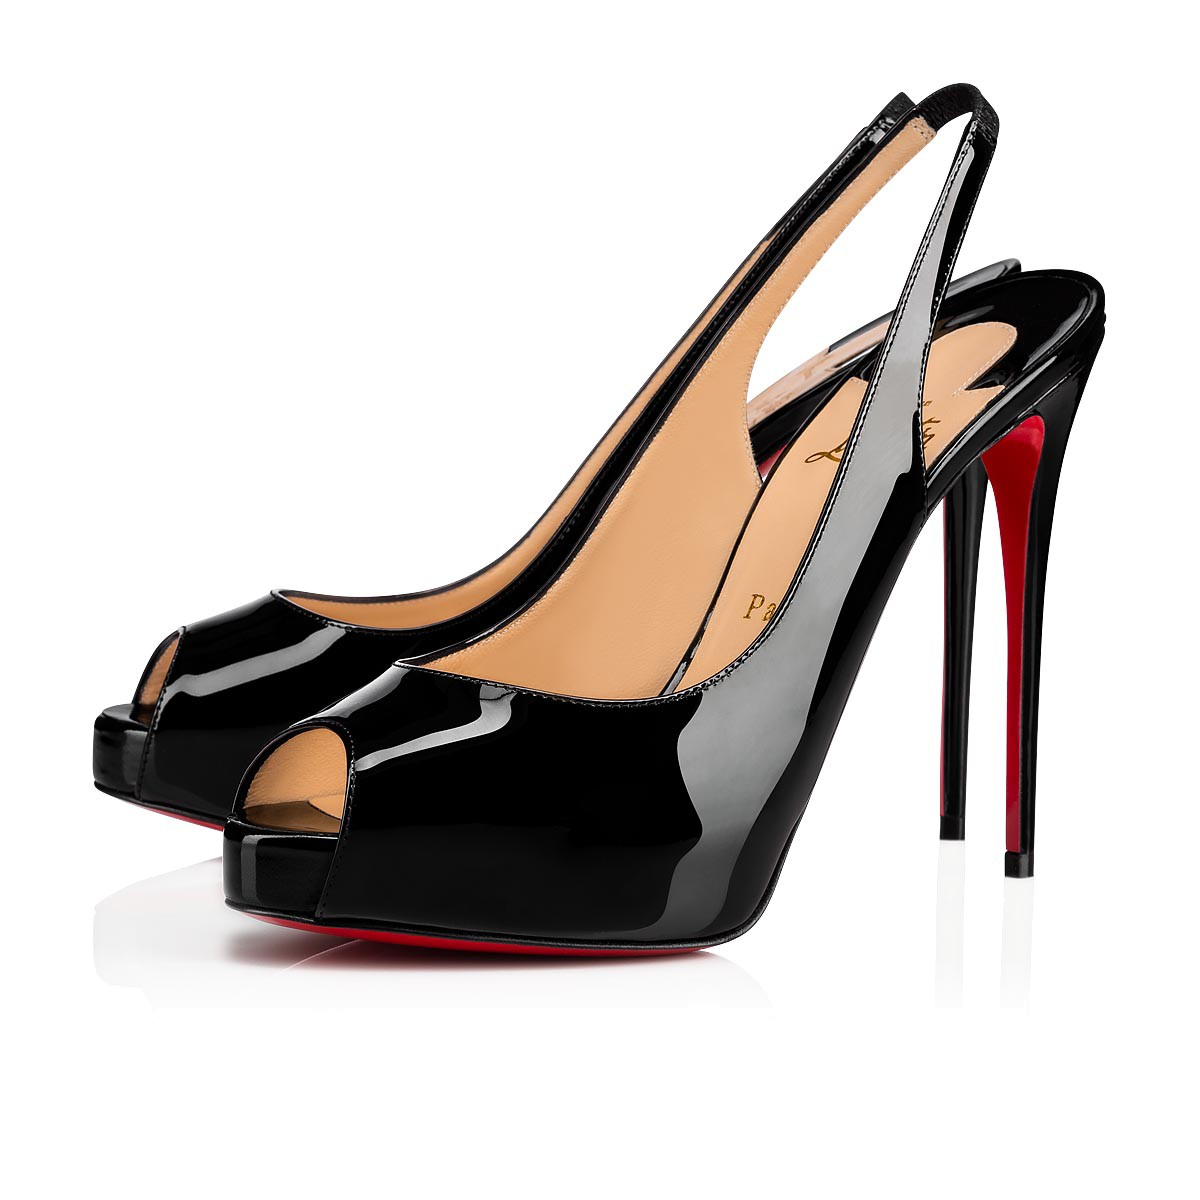 2a9158faa87 Private Number 120 Black Patent Leather - Women Shoes - Christian Louboutin